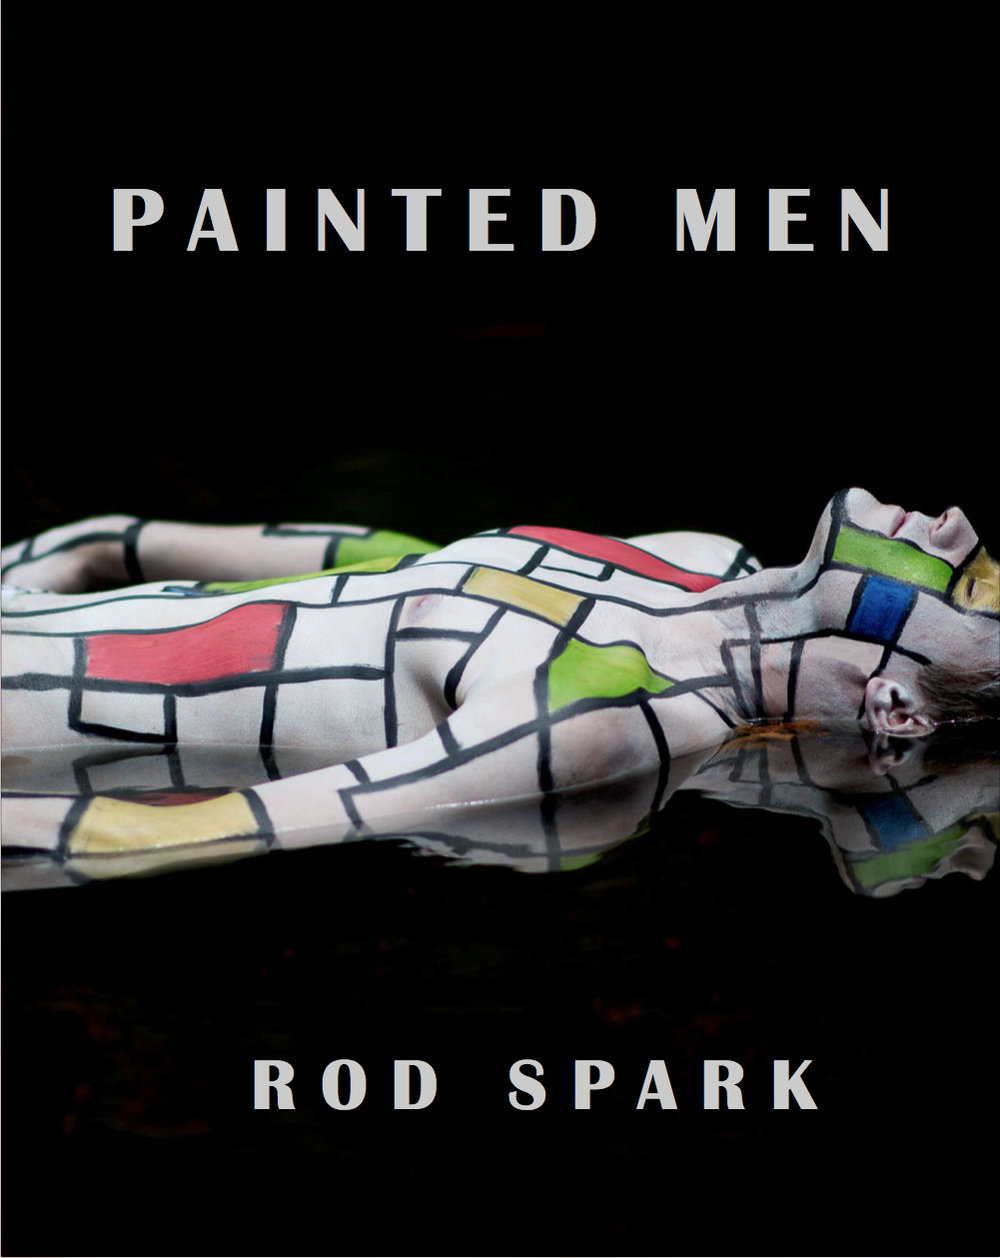 Painted Men - Today i am very excited that i created my first book based on my images created on pained male bodies.